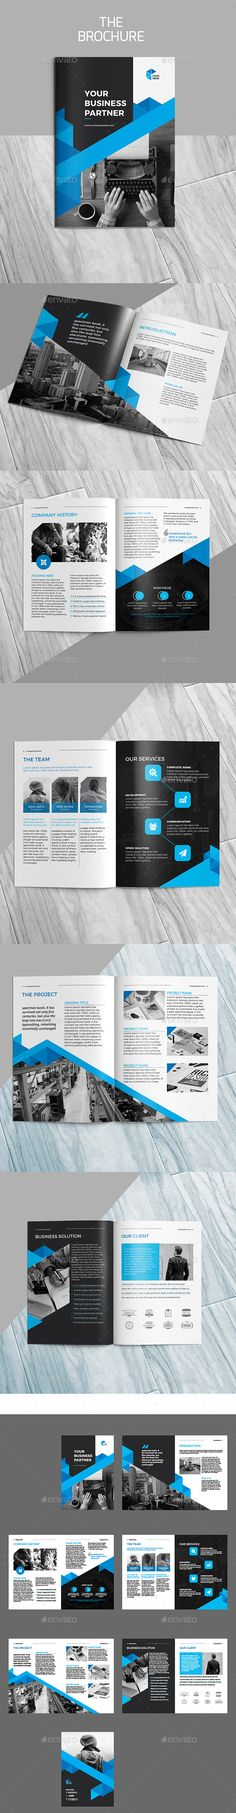 The Brochure - #Brochures Print #Templates Download here: https://graphicriver.net/item/the-brochure/19520513?ref=alena994